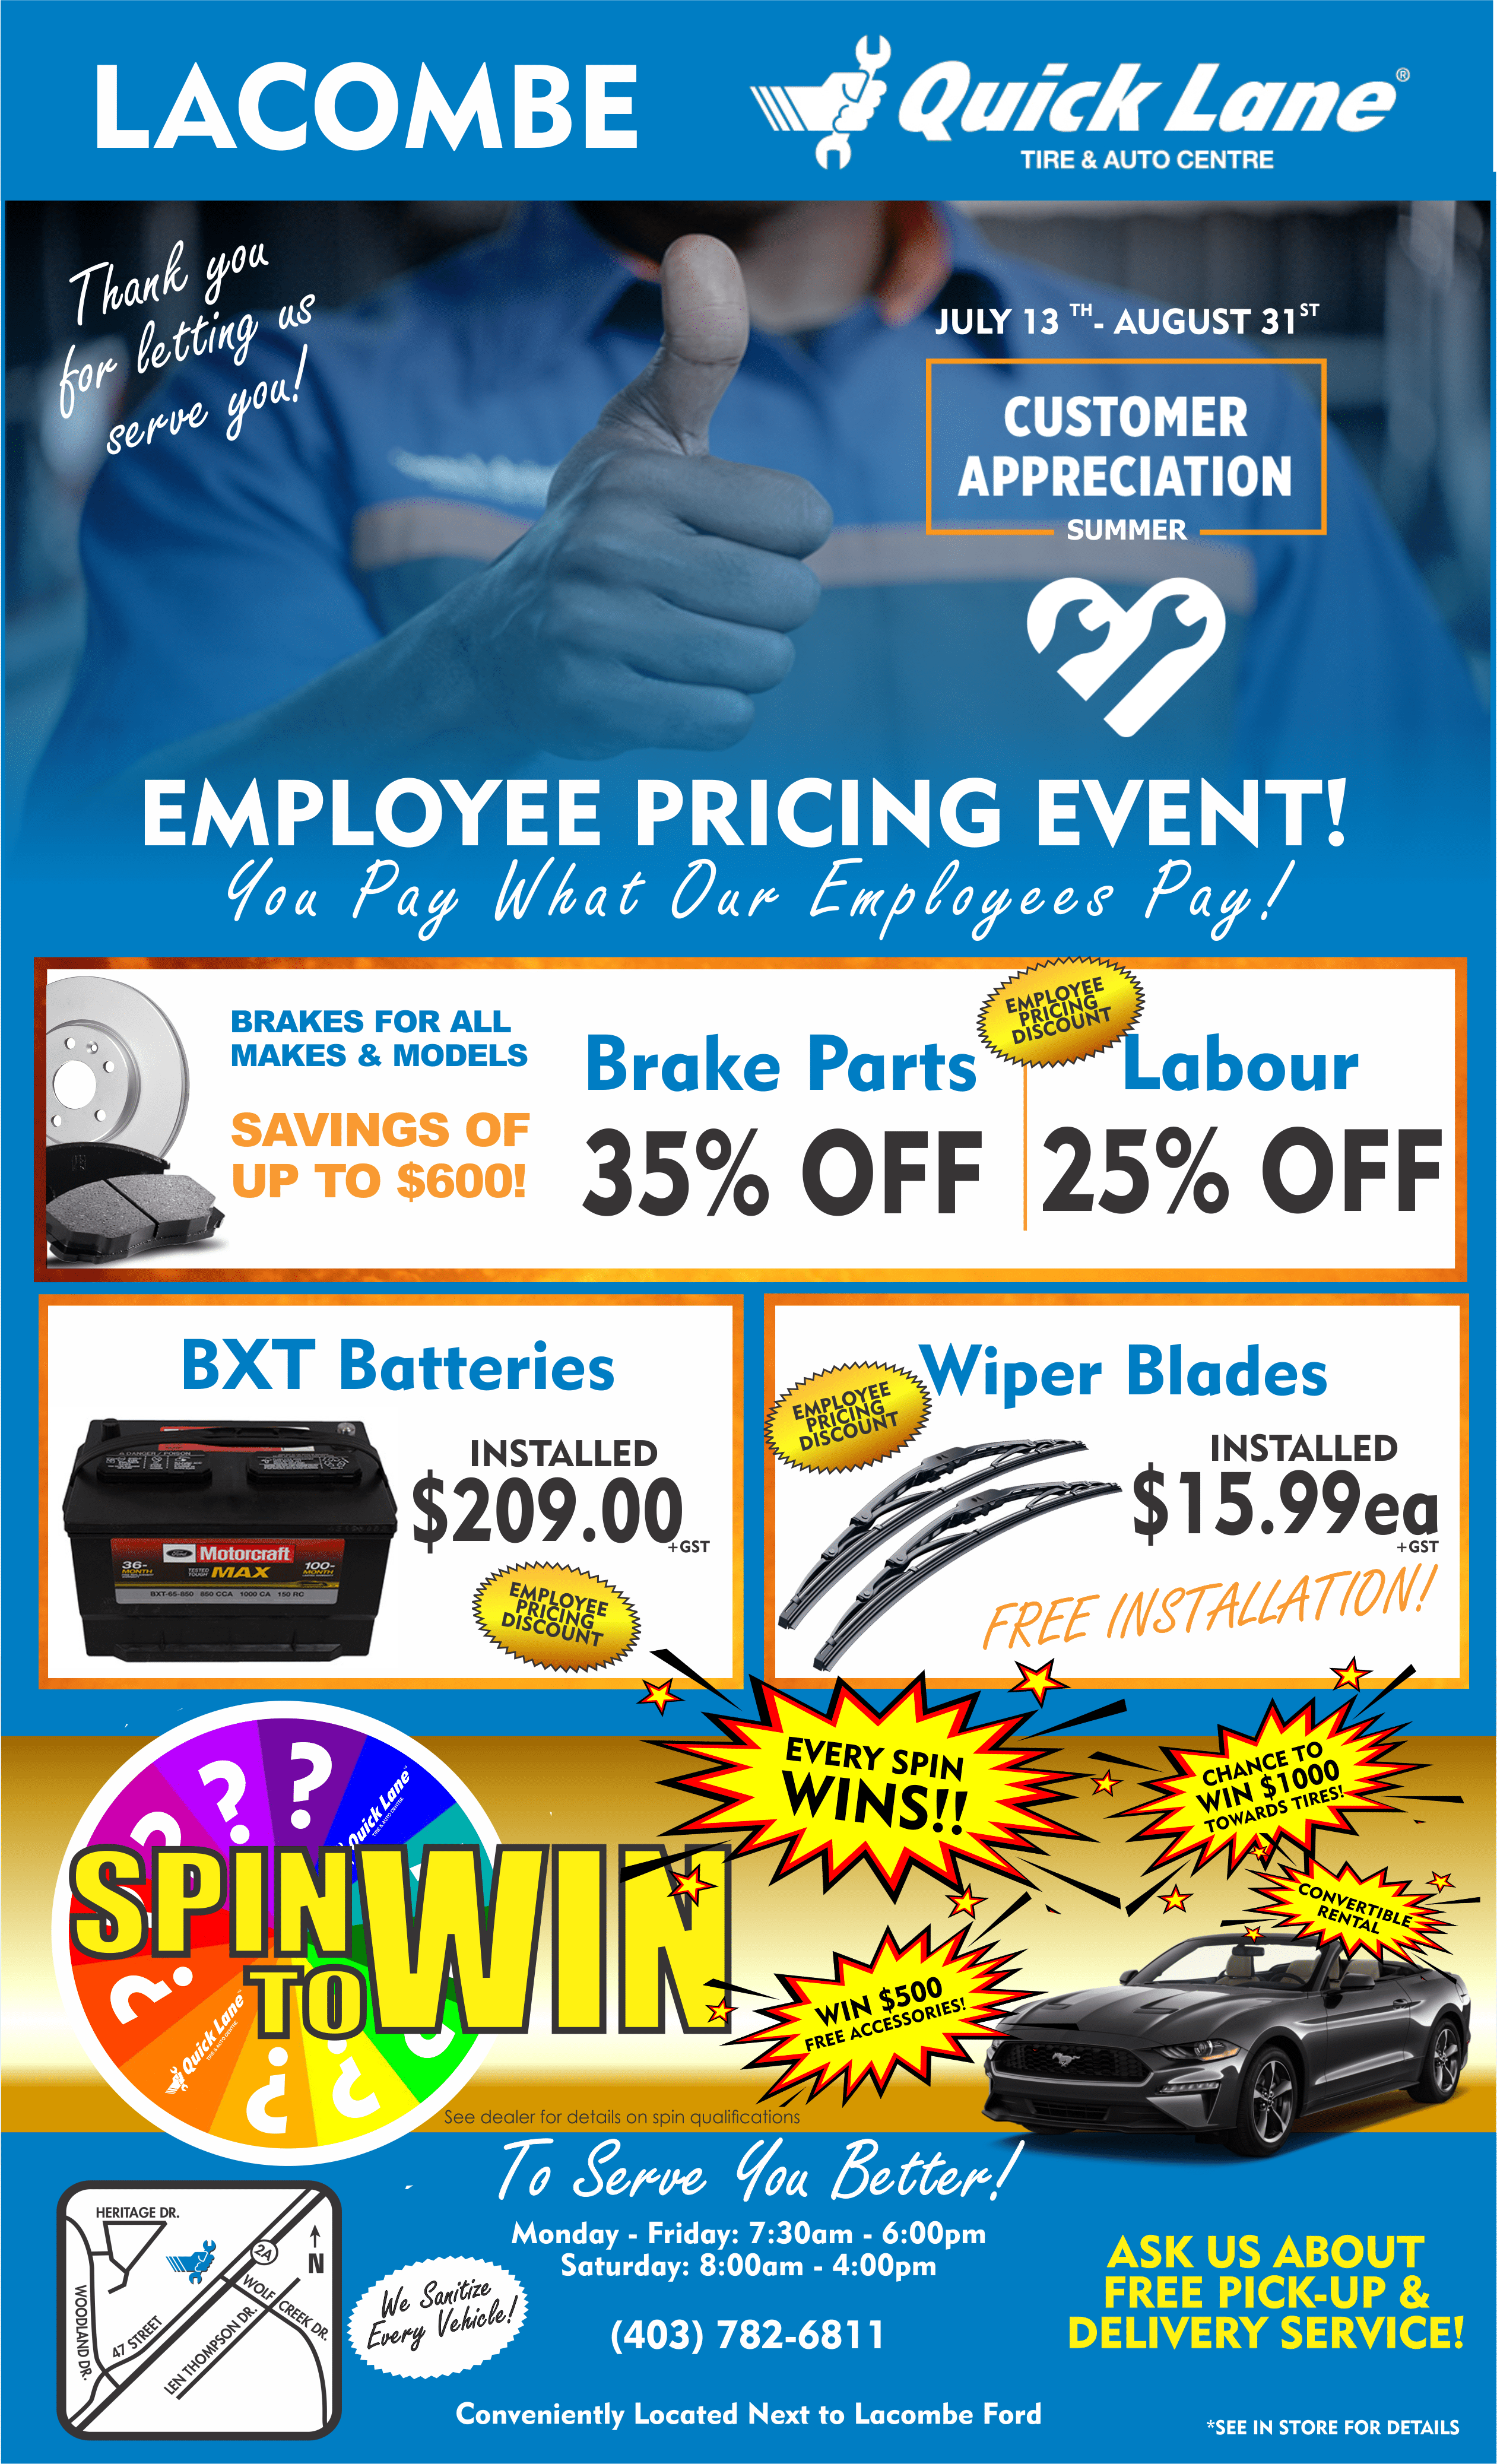 Customer Appreciation and Employee Pricing event at Quick Lane in Lacombe Alberta